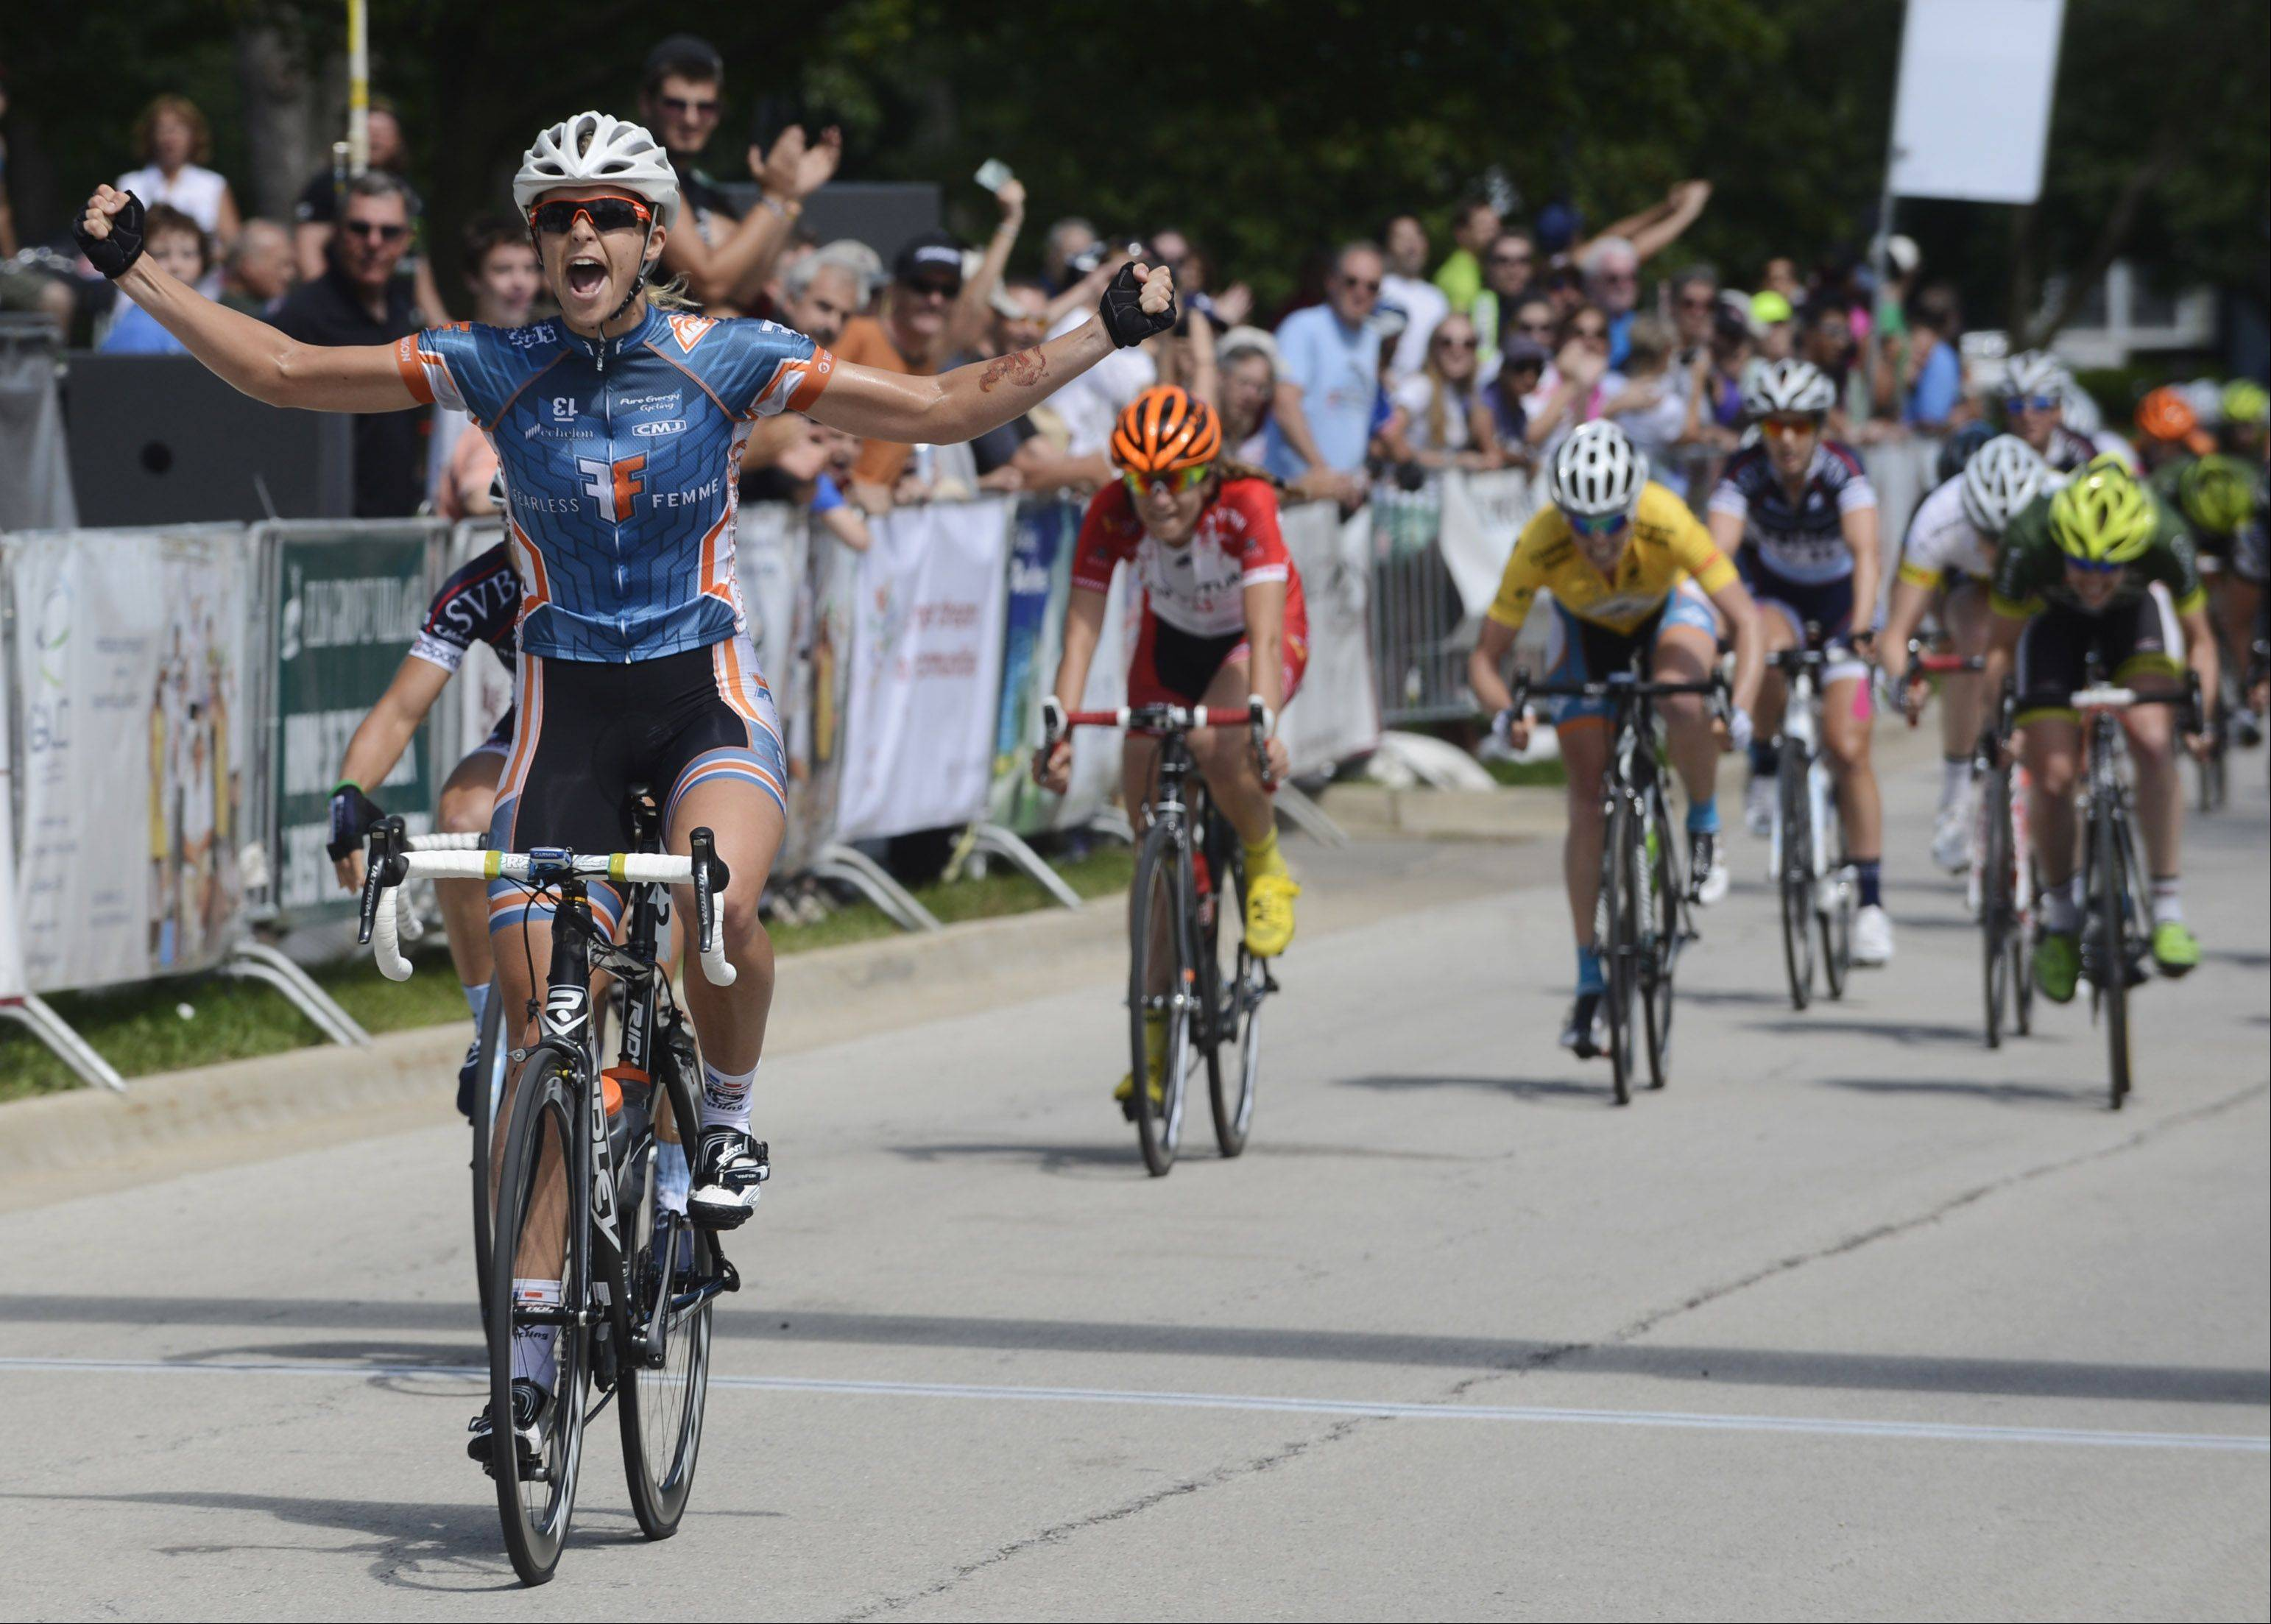 Kimberley Wells is the winner of stage 3 of the ComEd Women Pro Circuit Race during the Tour of Elk Grove Sunday.